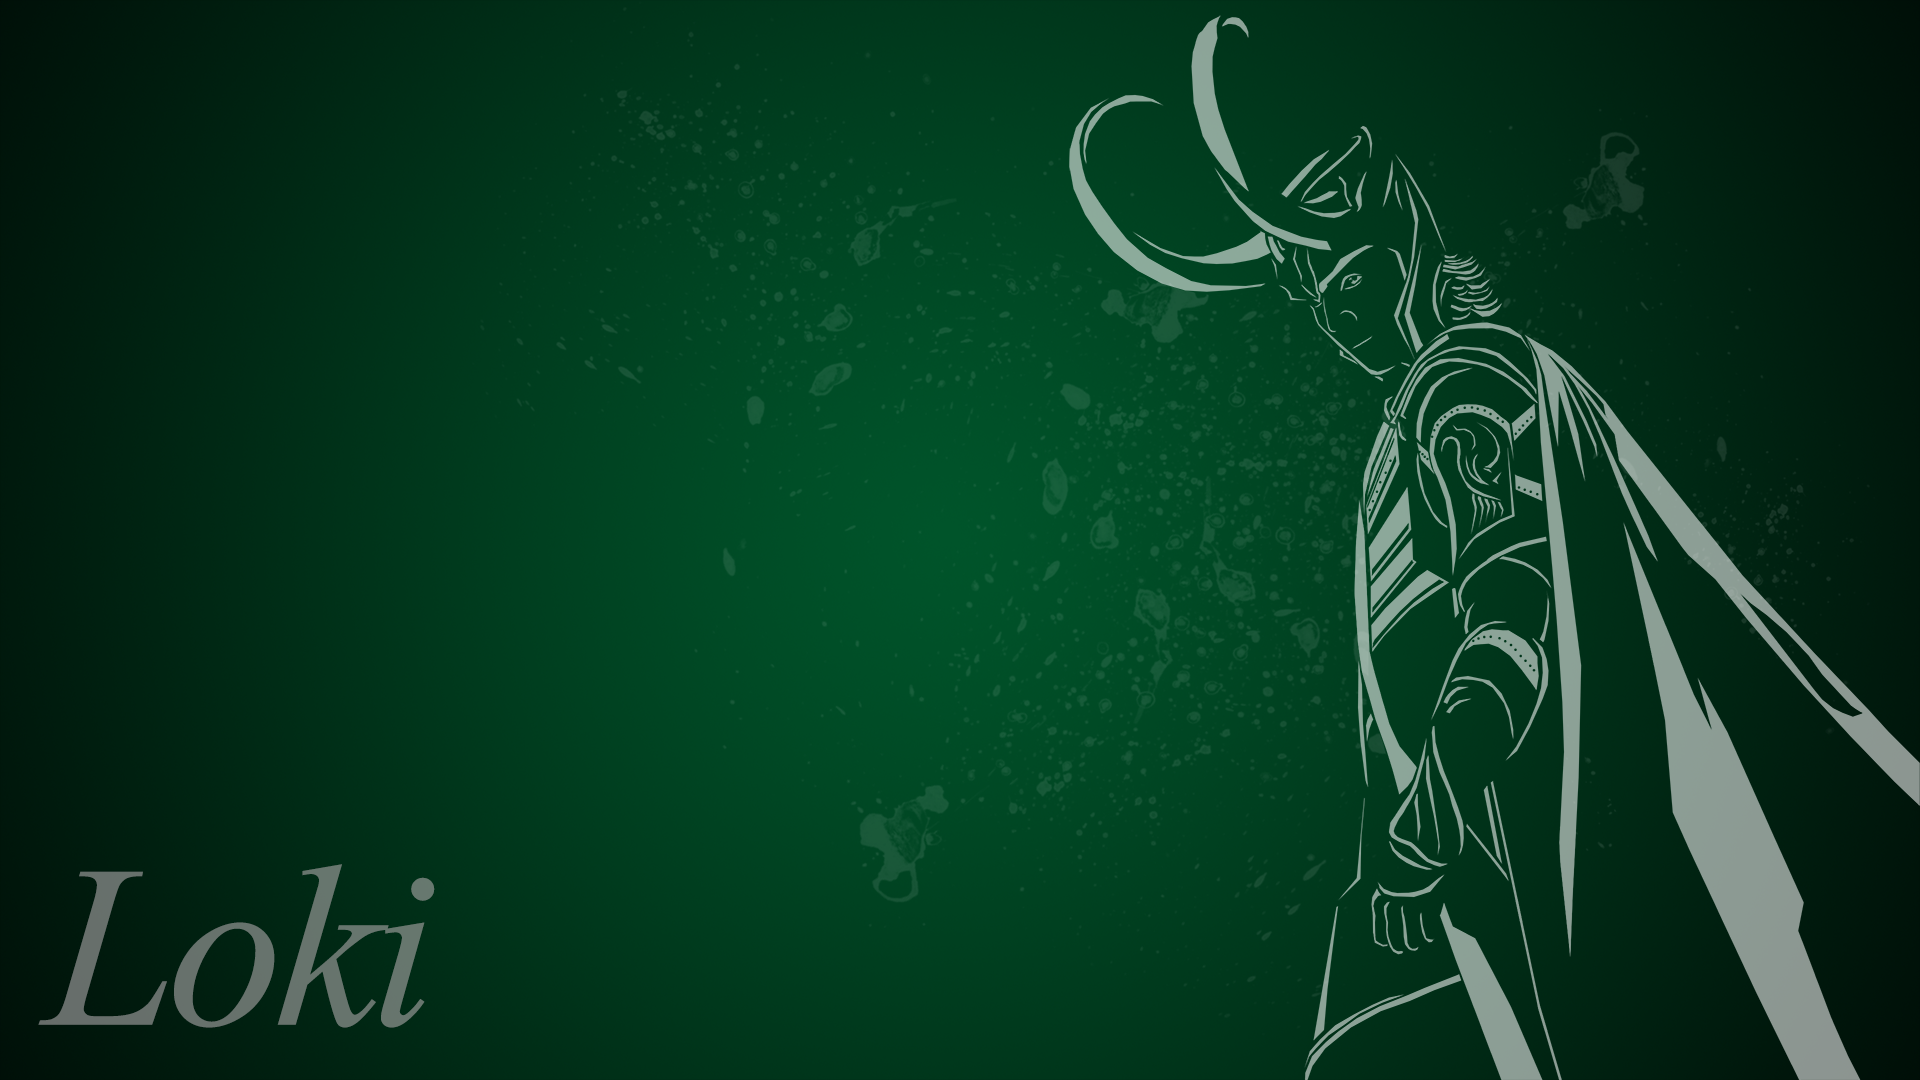 loki background for tigger - photo #21